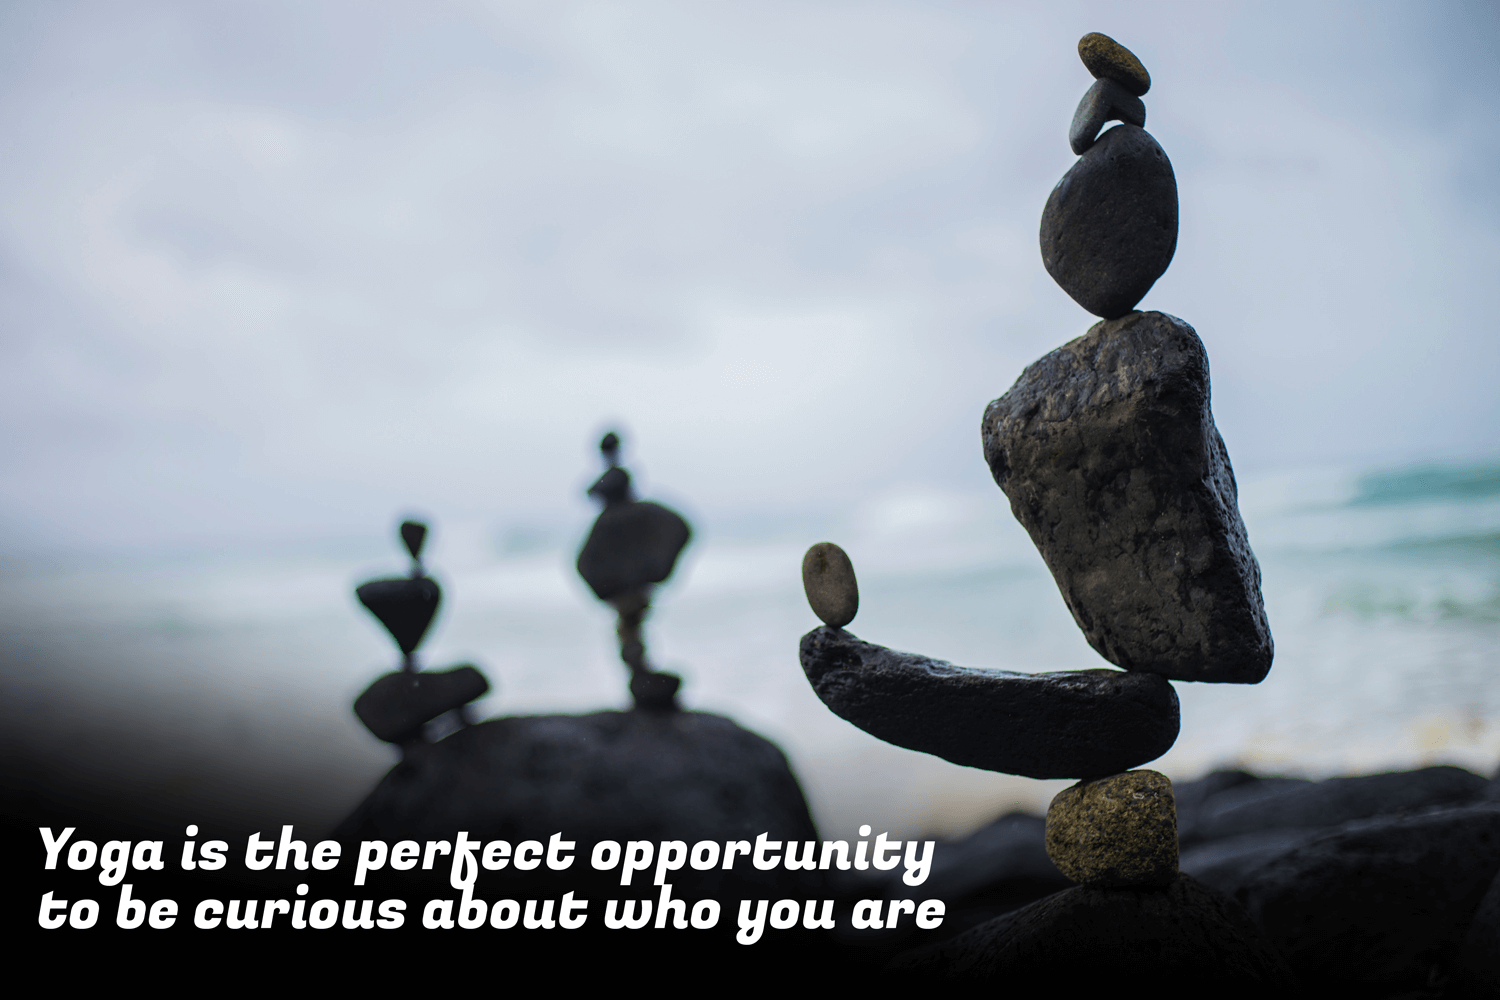 Yoga is the perfect opportunity to be curious about who you are Yoga Quotes Inspiration